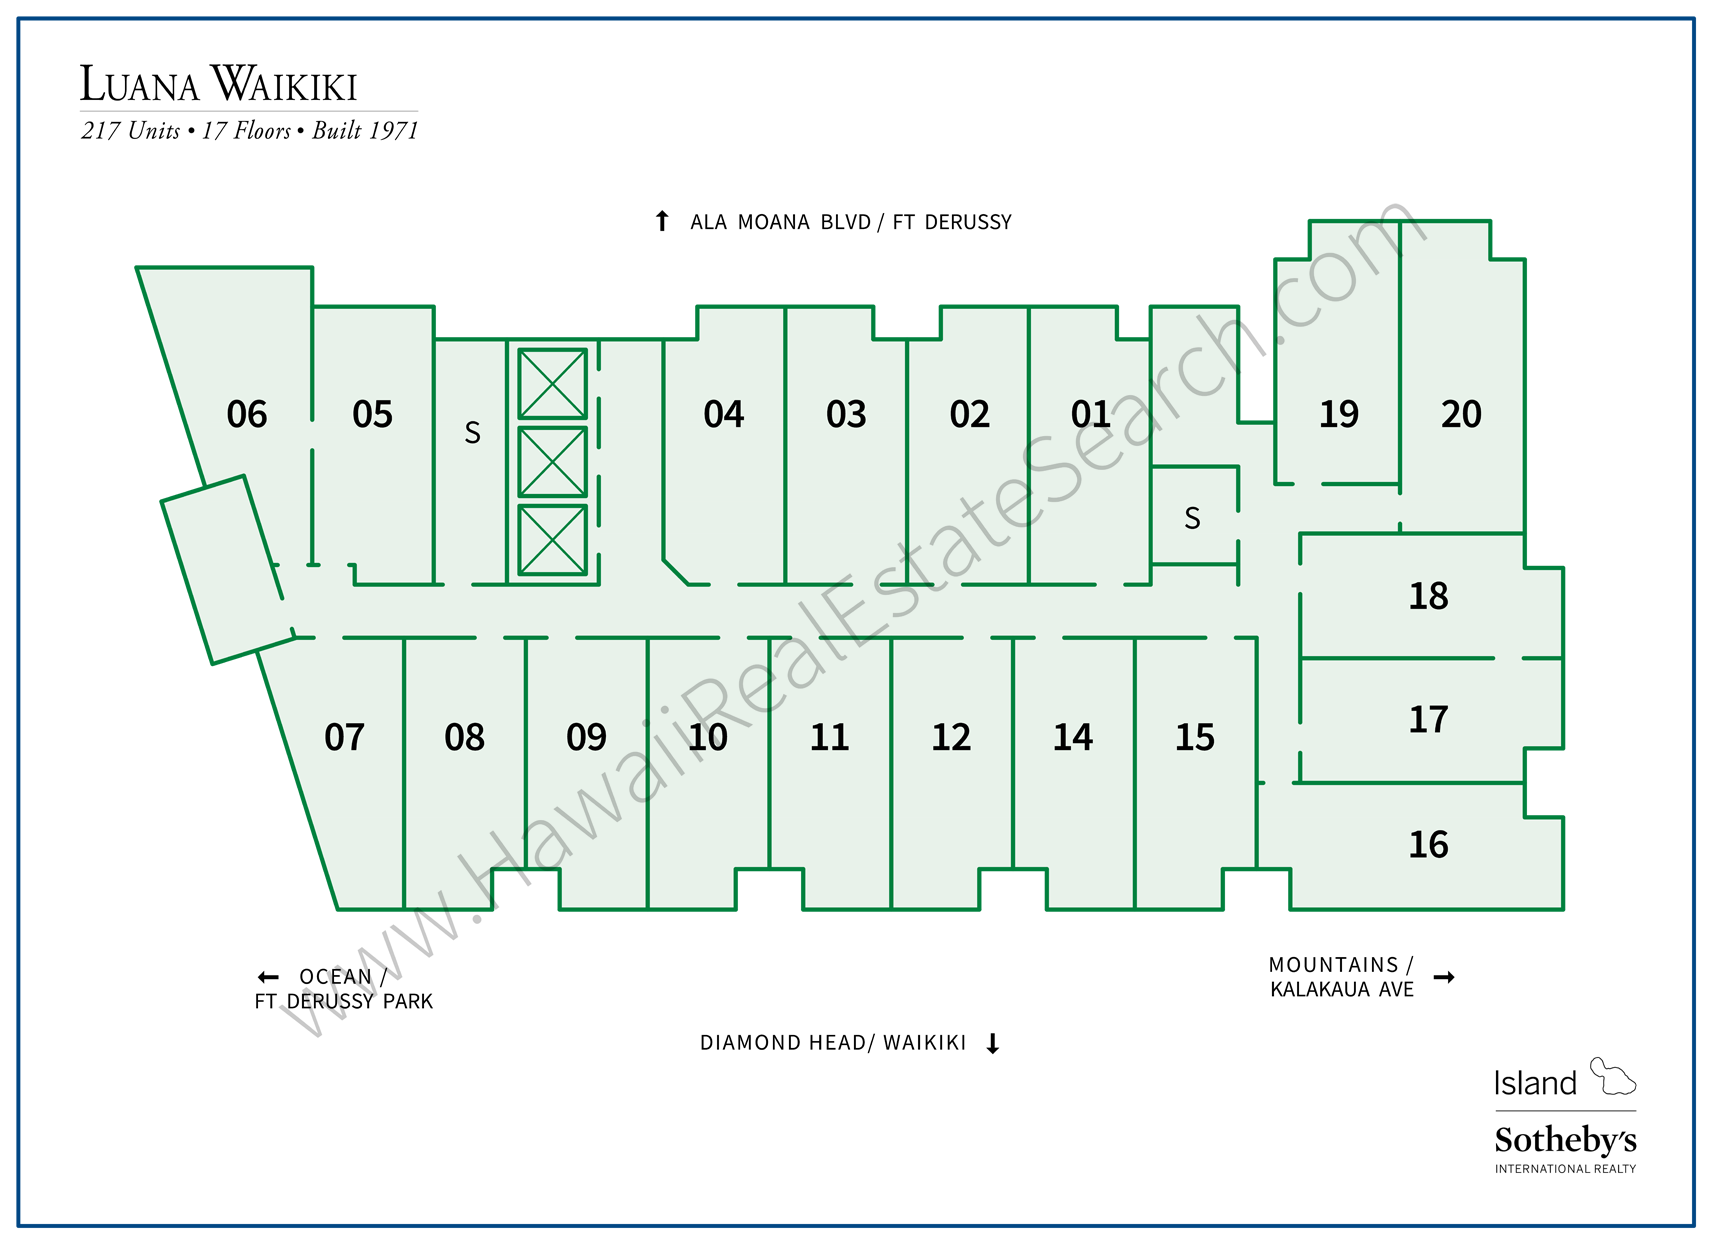 luana waikiki property map